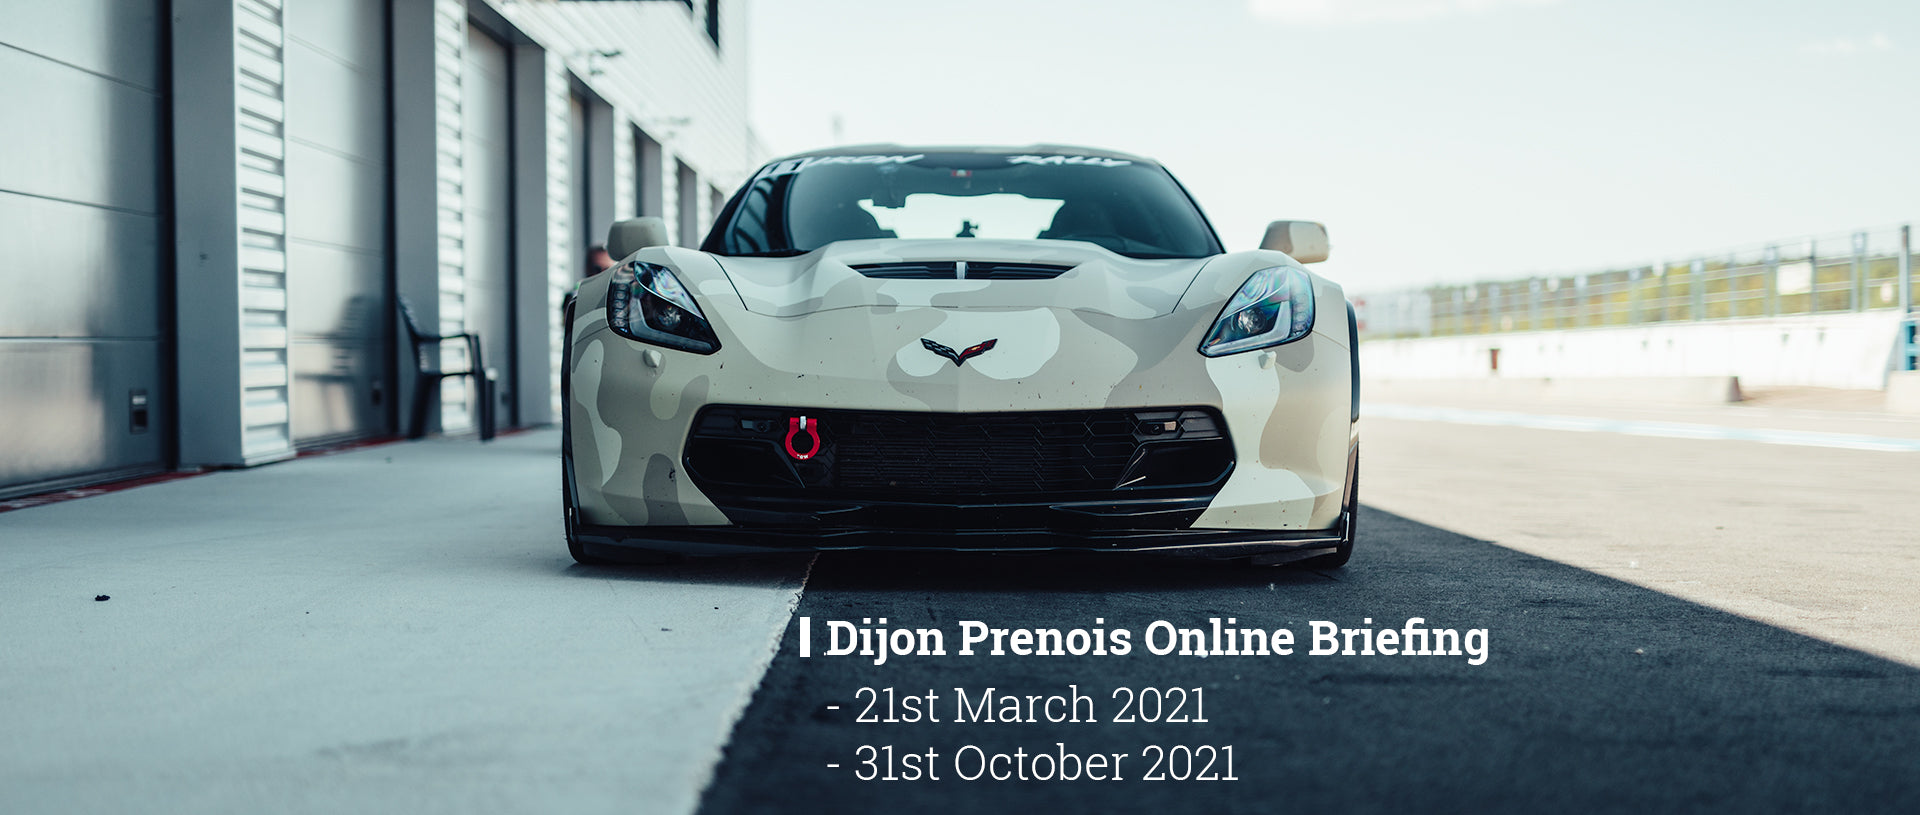 GP Days E-Briefing Dijon Prenois Track Day 2021